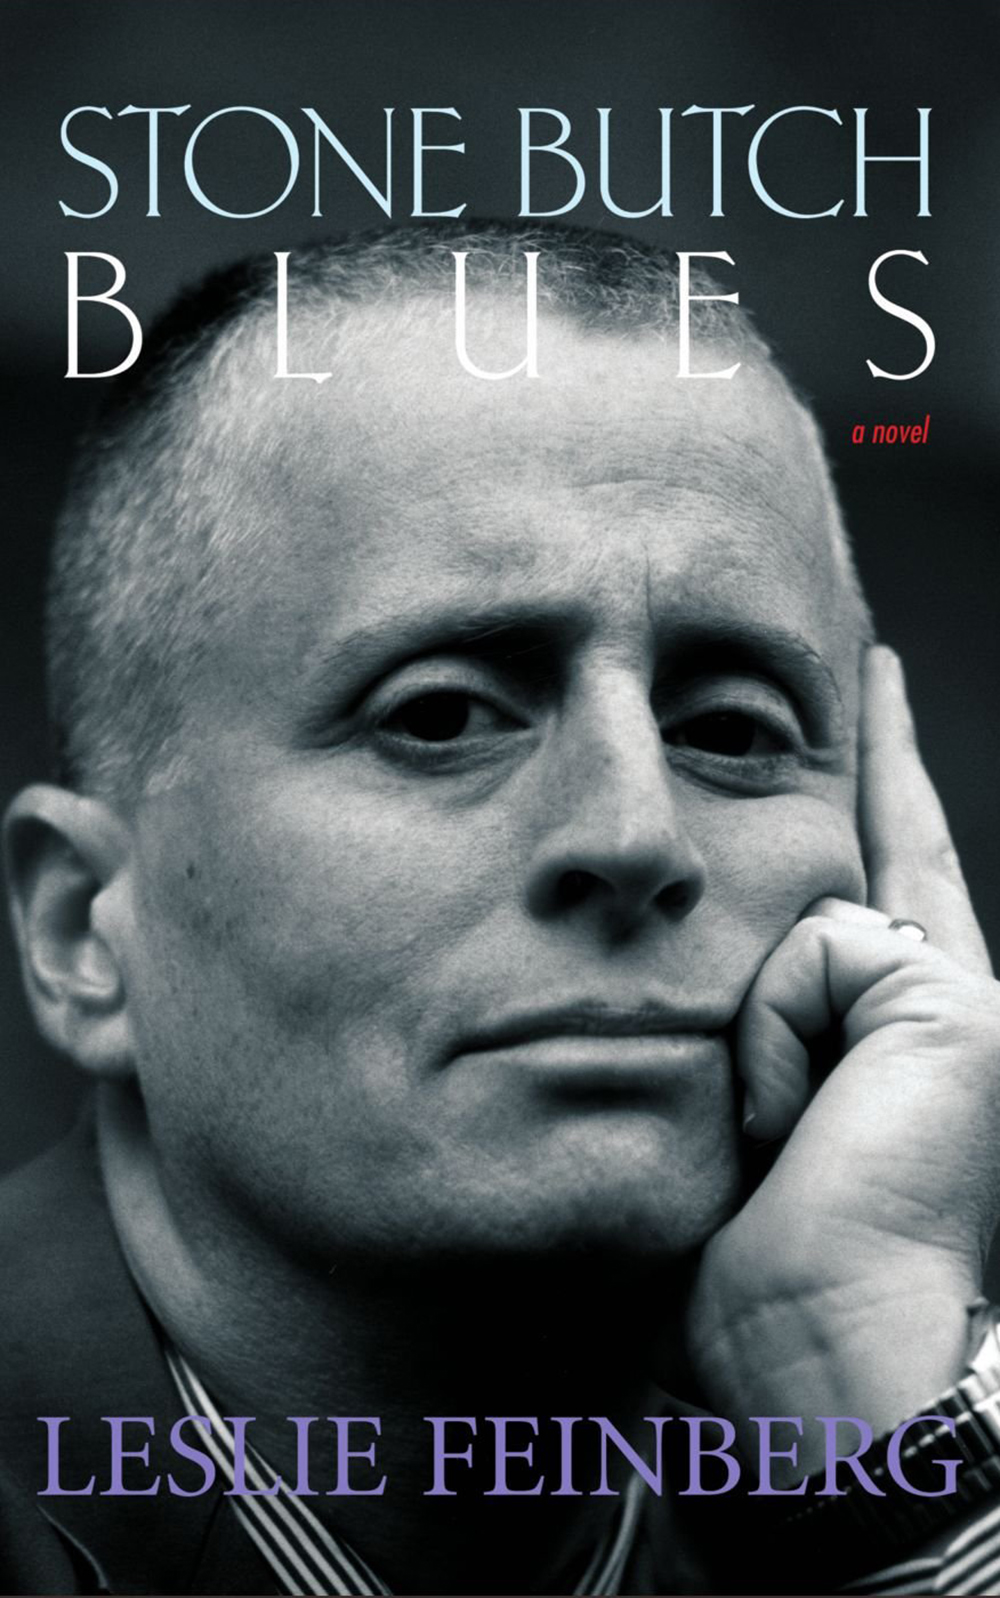 """stone butch blues This article analyzes the role of emotion in leslie feinberg's stone butch blueswidely understood as one of the first modern transgender novels, stone butch blues depicts the bodily changes of its protagonist, jess goldberg, from living as a """"he–she,"""" to passing as male, to living as neither male nor female."""